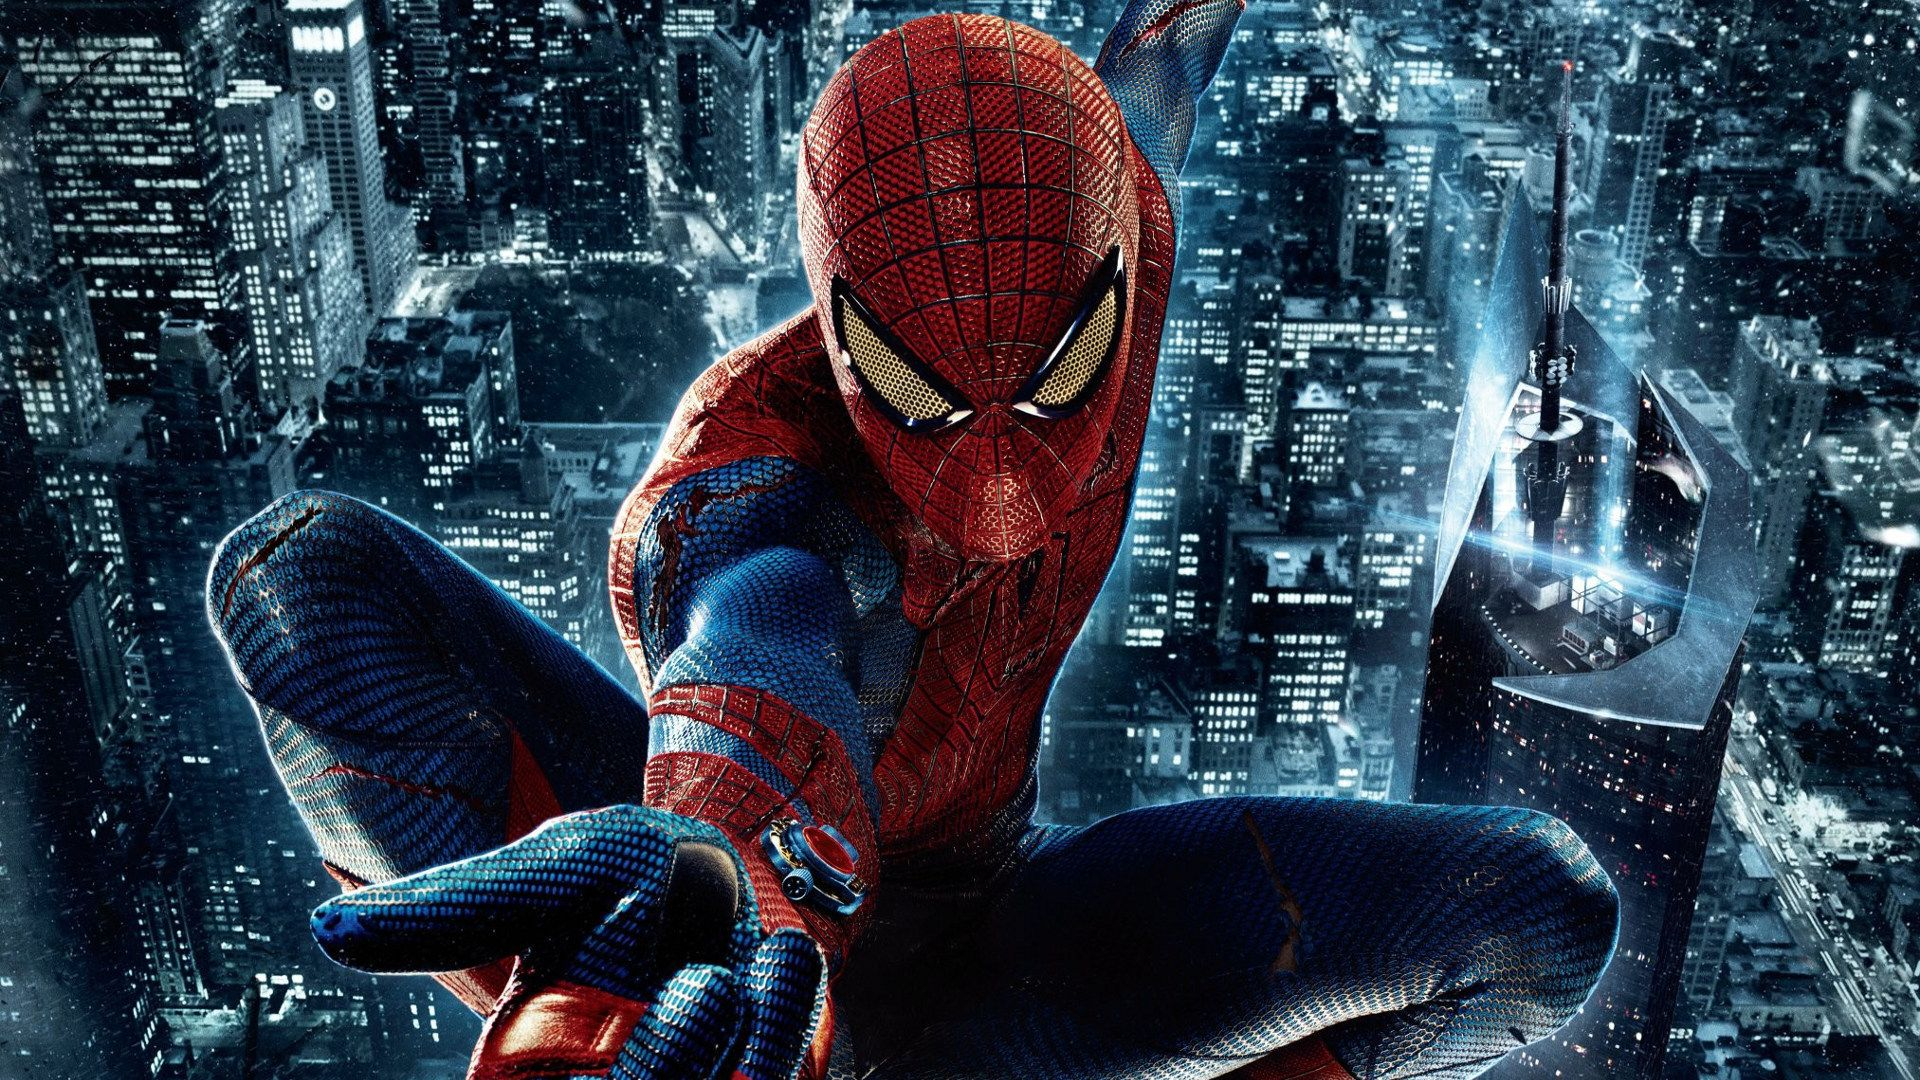 Spiderman Fondo Pantalla